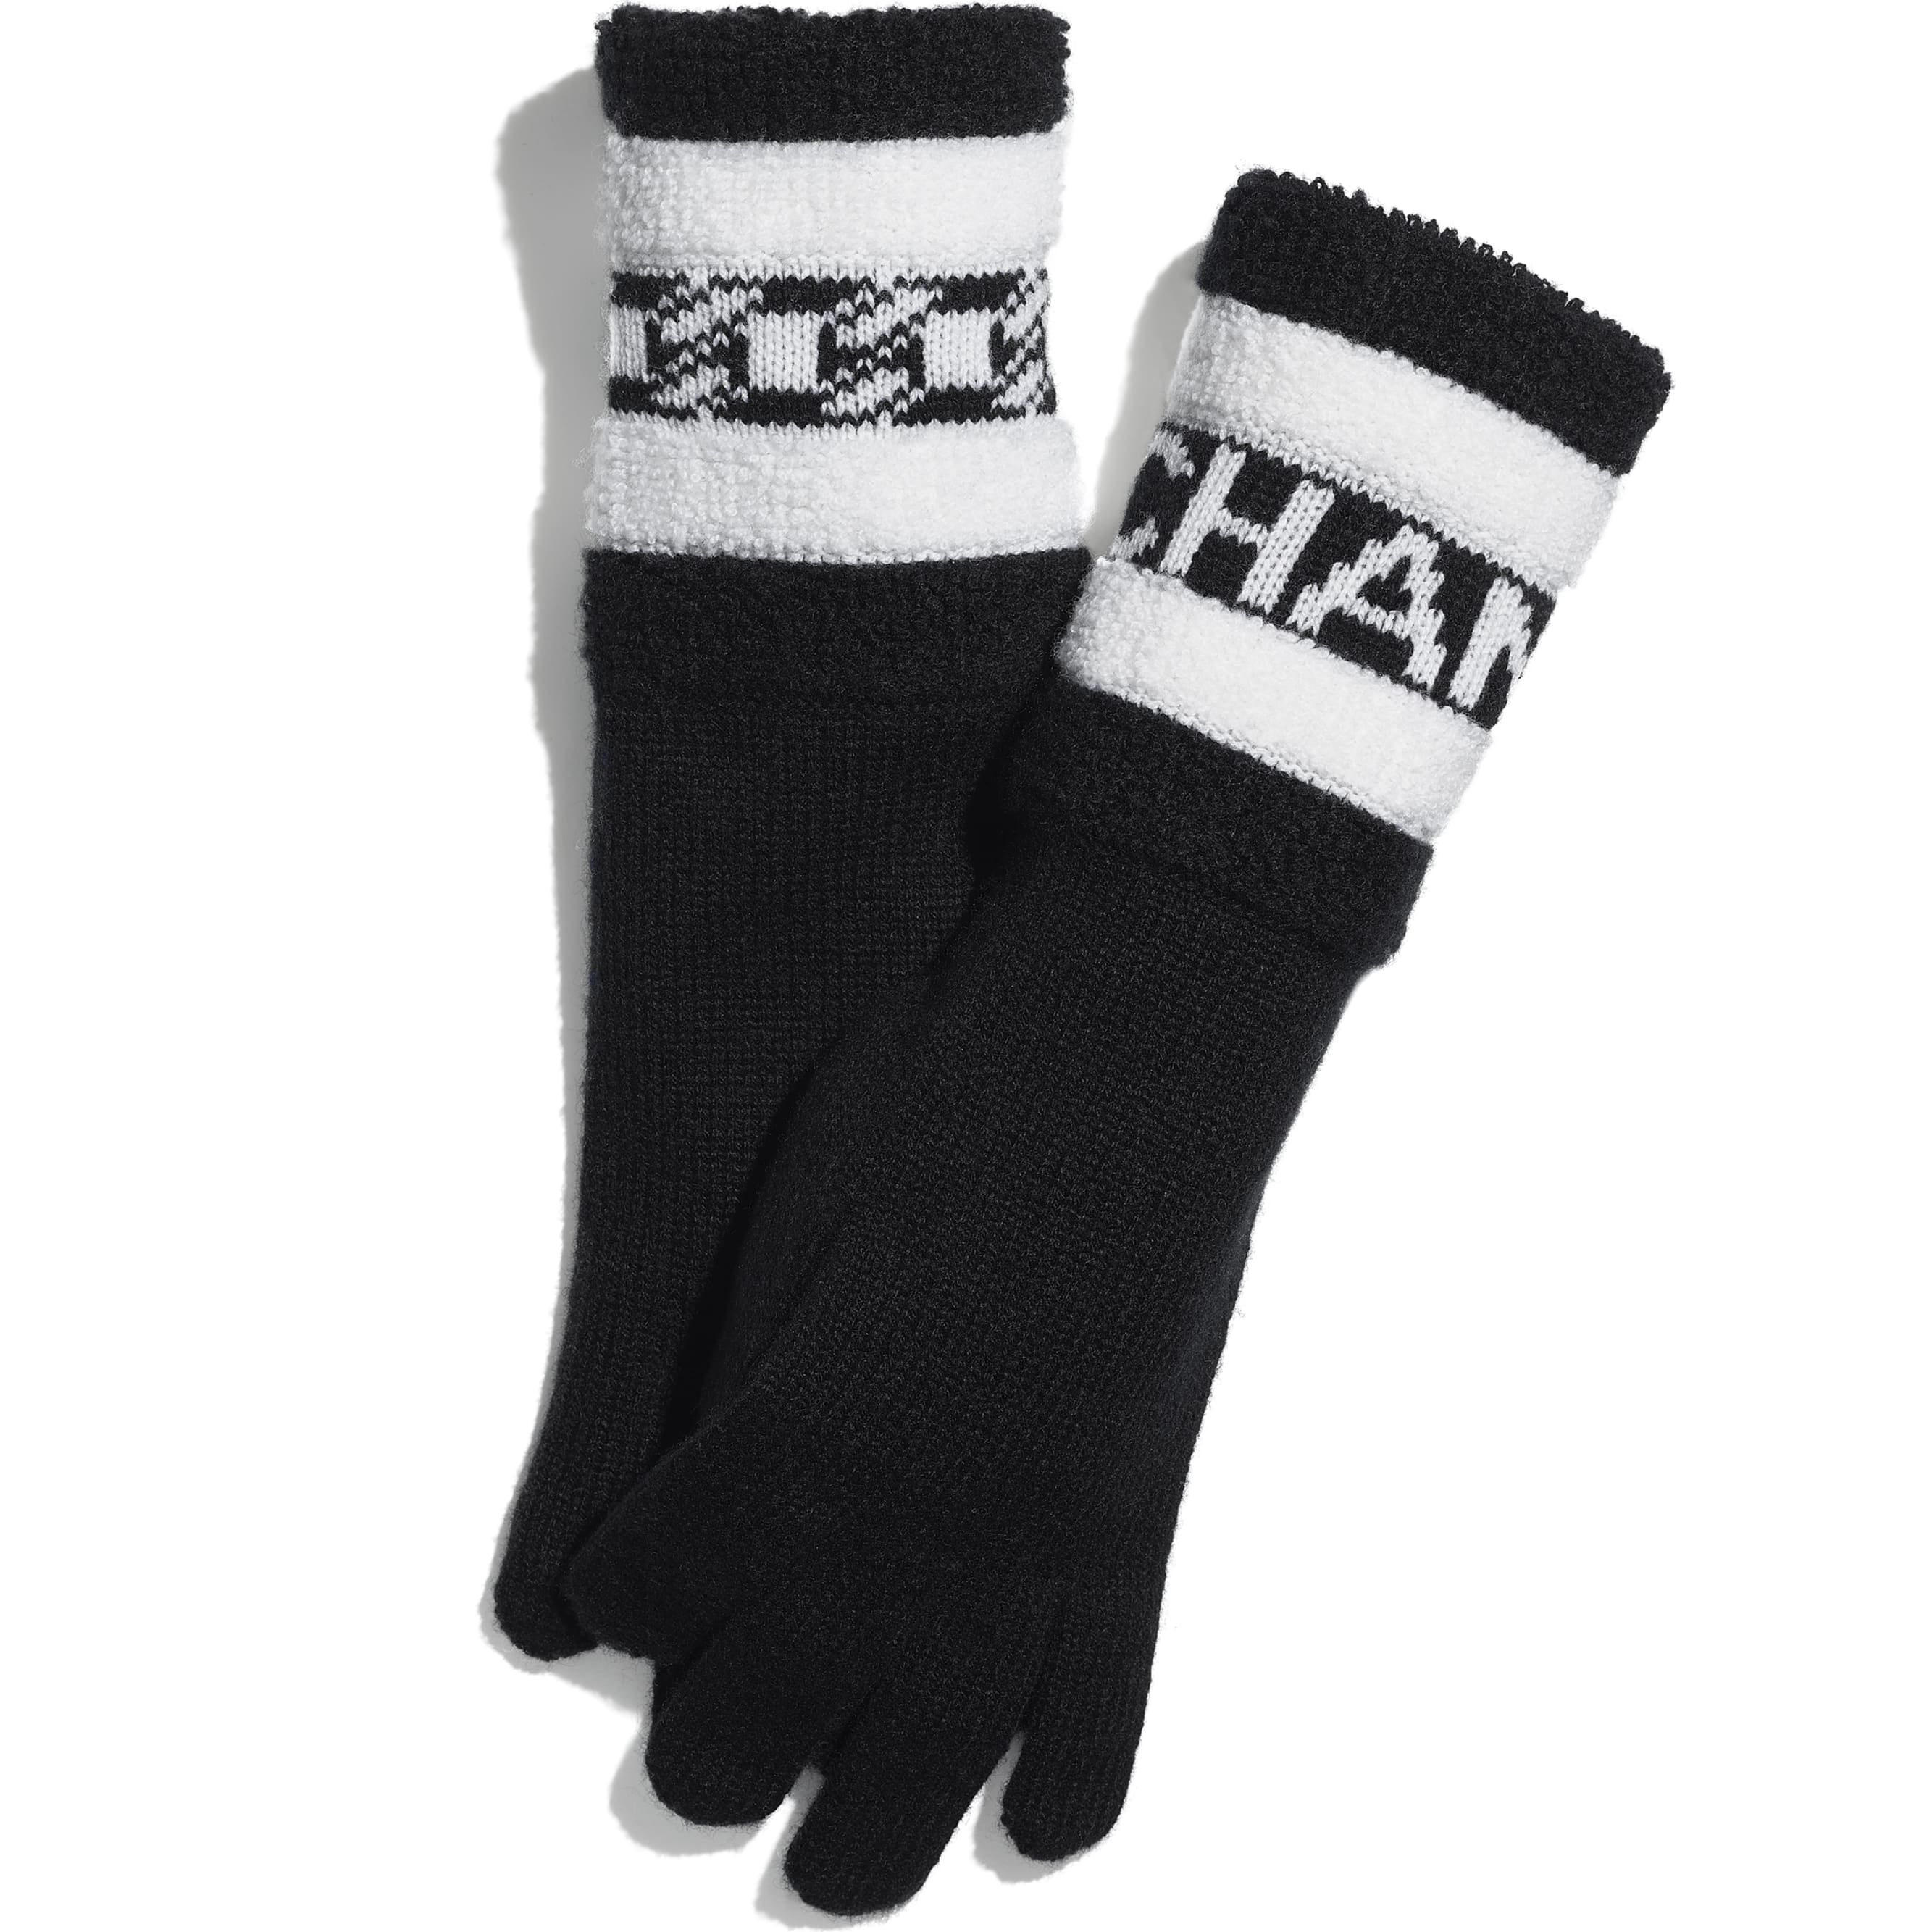 Gloves - Black & Ecru - Cashmere - CHANEL - Default view - see standard sized version